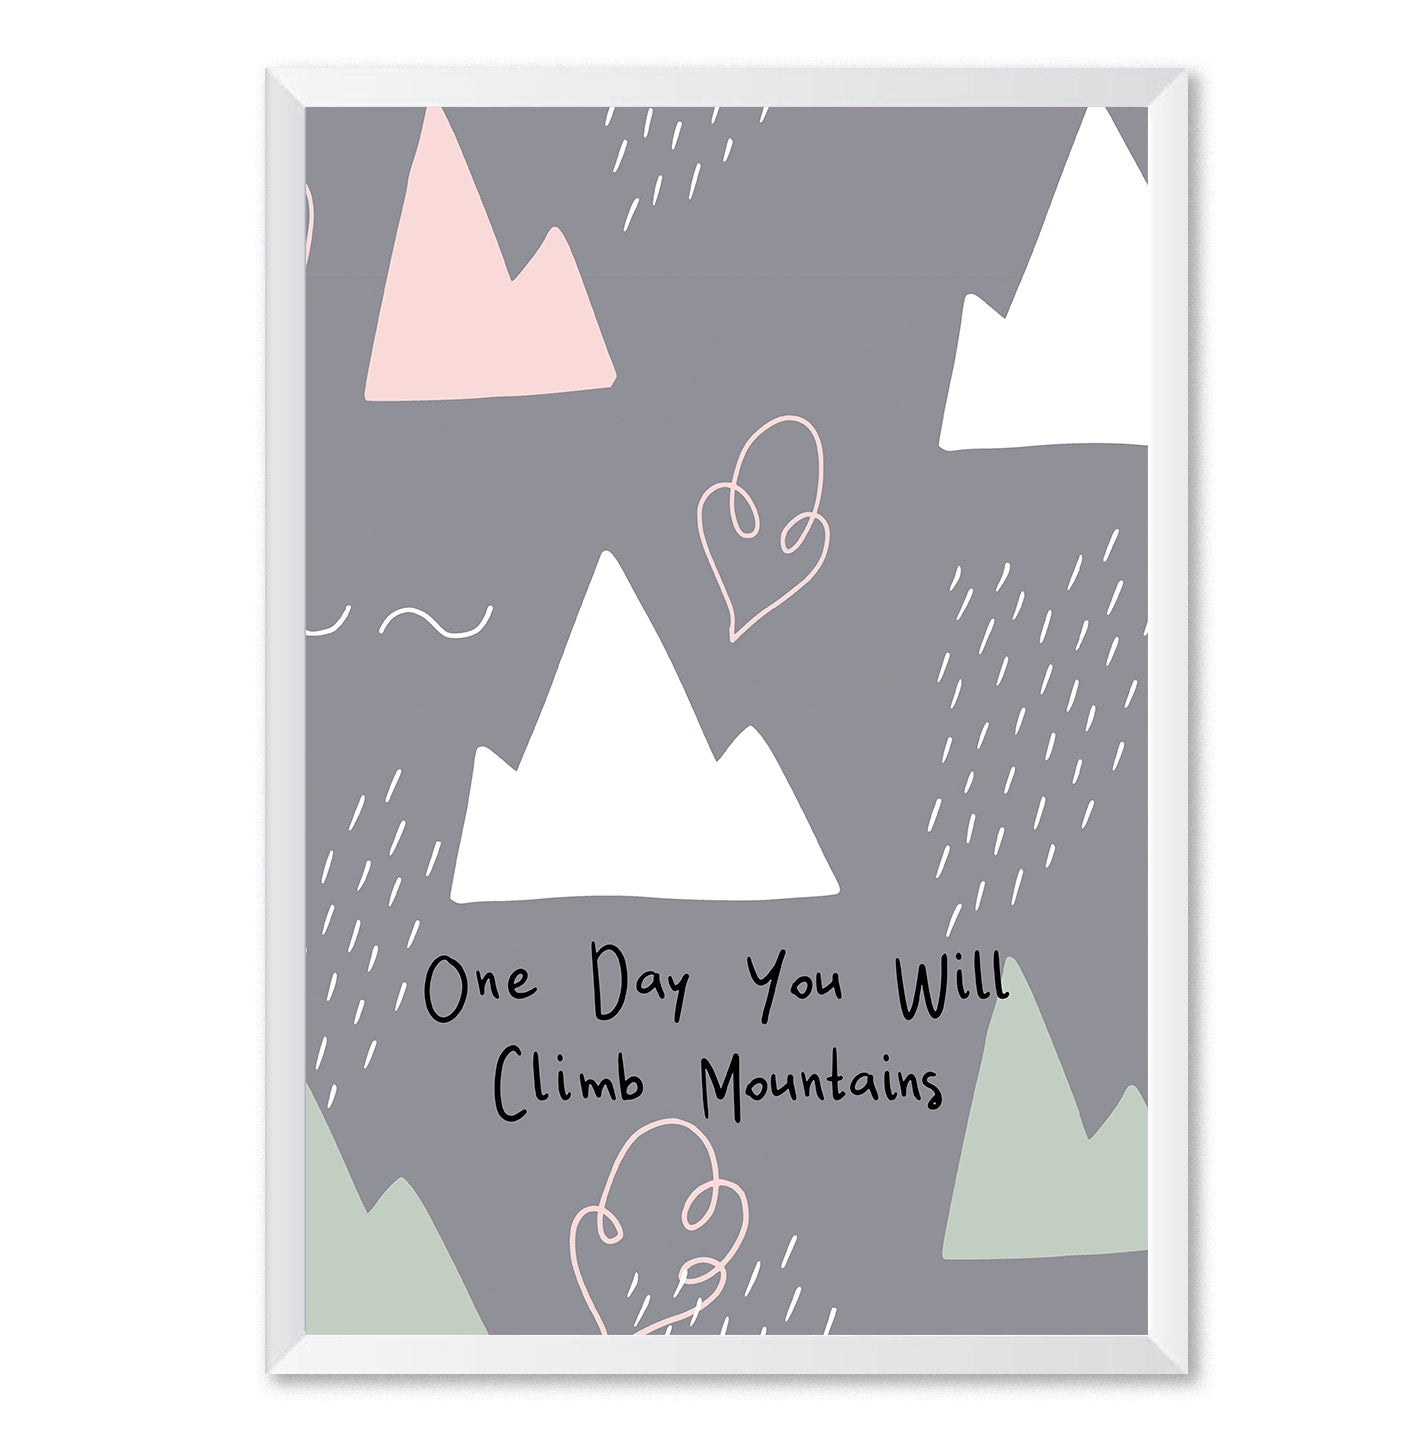 One Day You Will Climb Mountains Poster Print-Print-Mode Prints